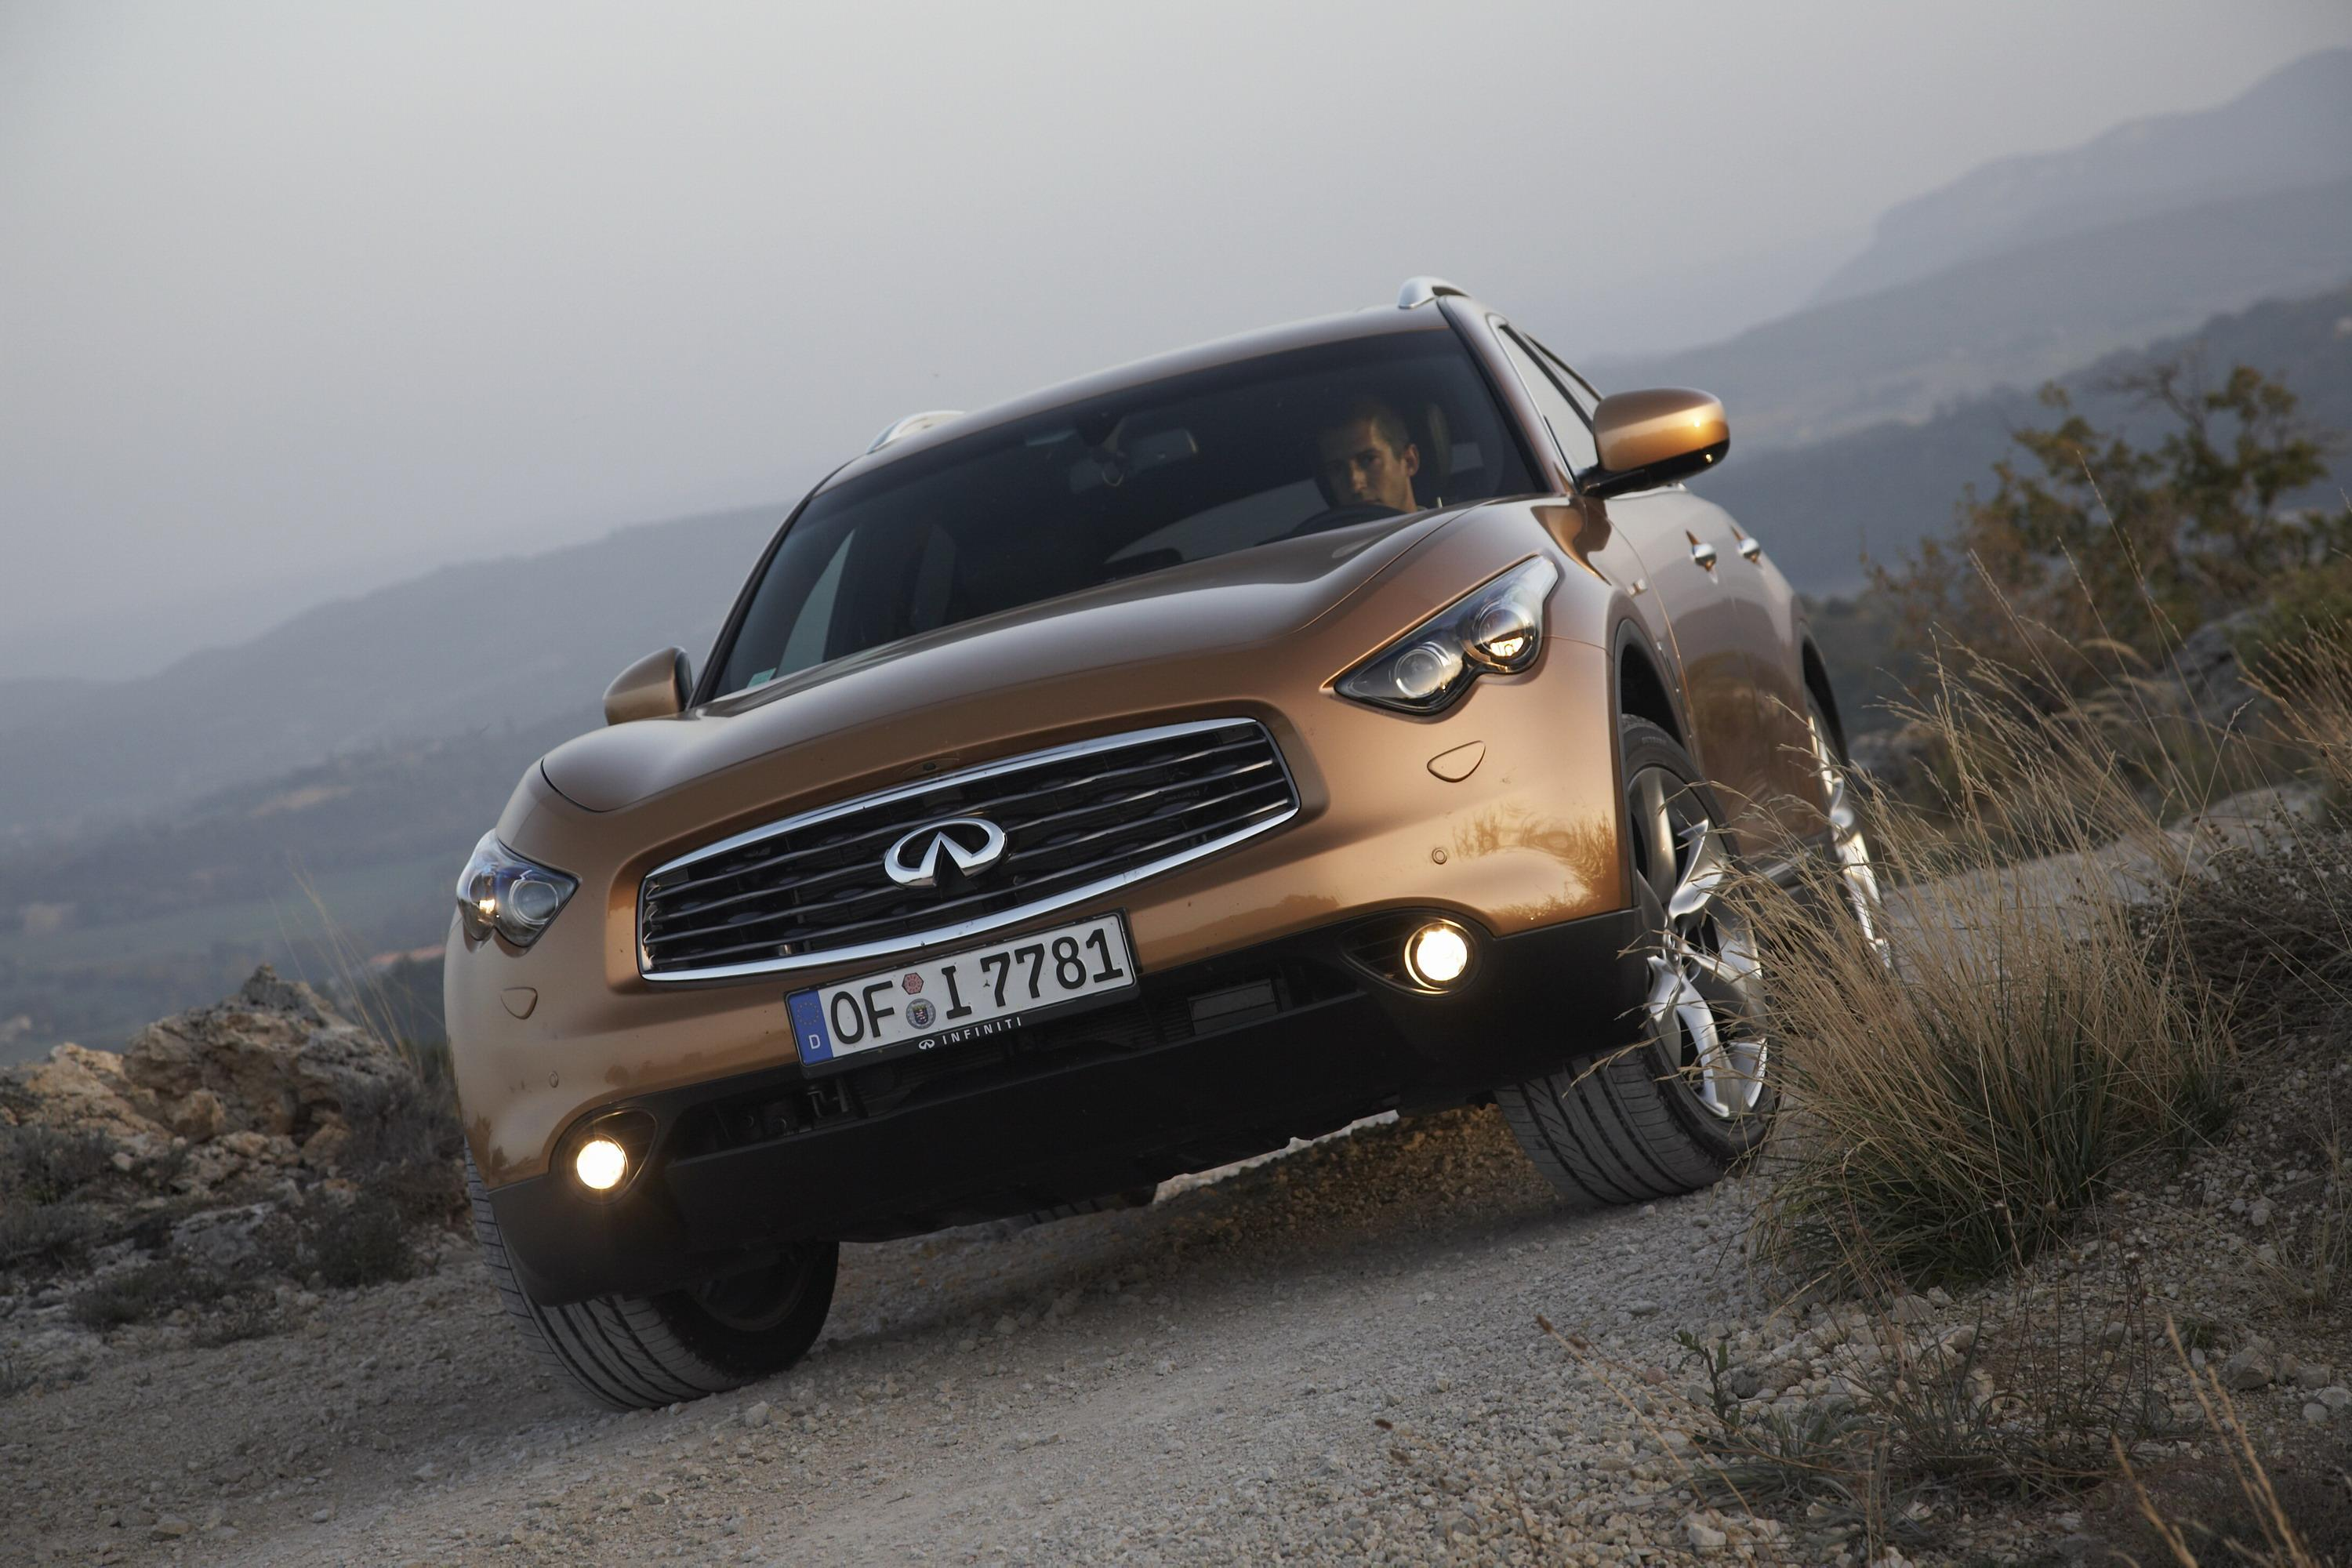 infinity img sale glmsu full infiniti for living qatar advert option vehicles